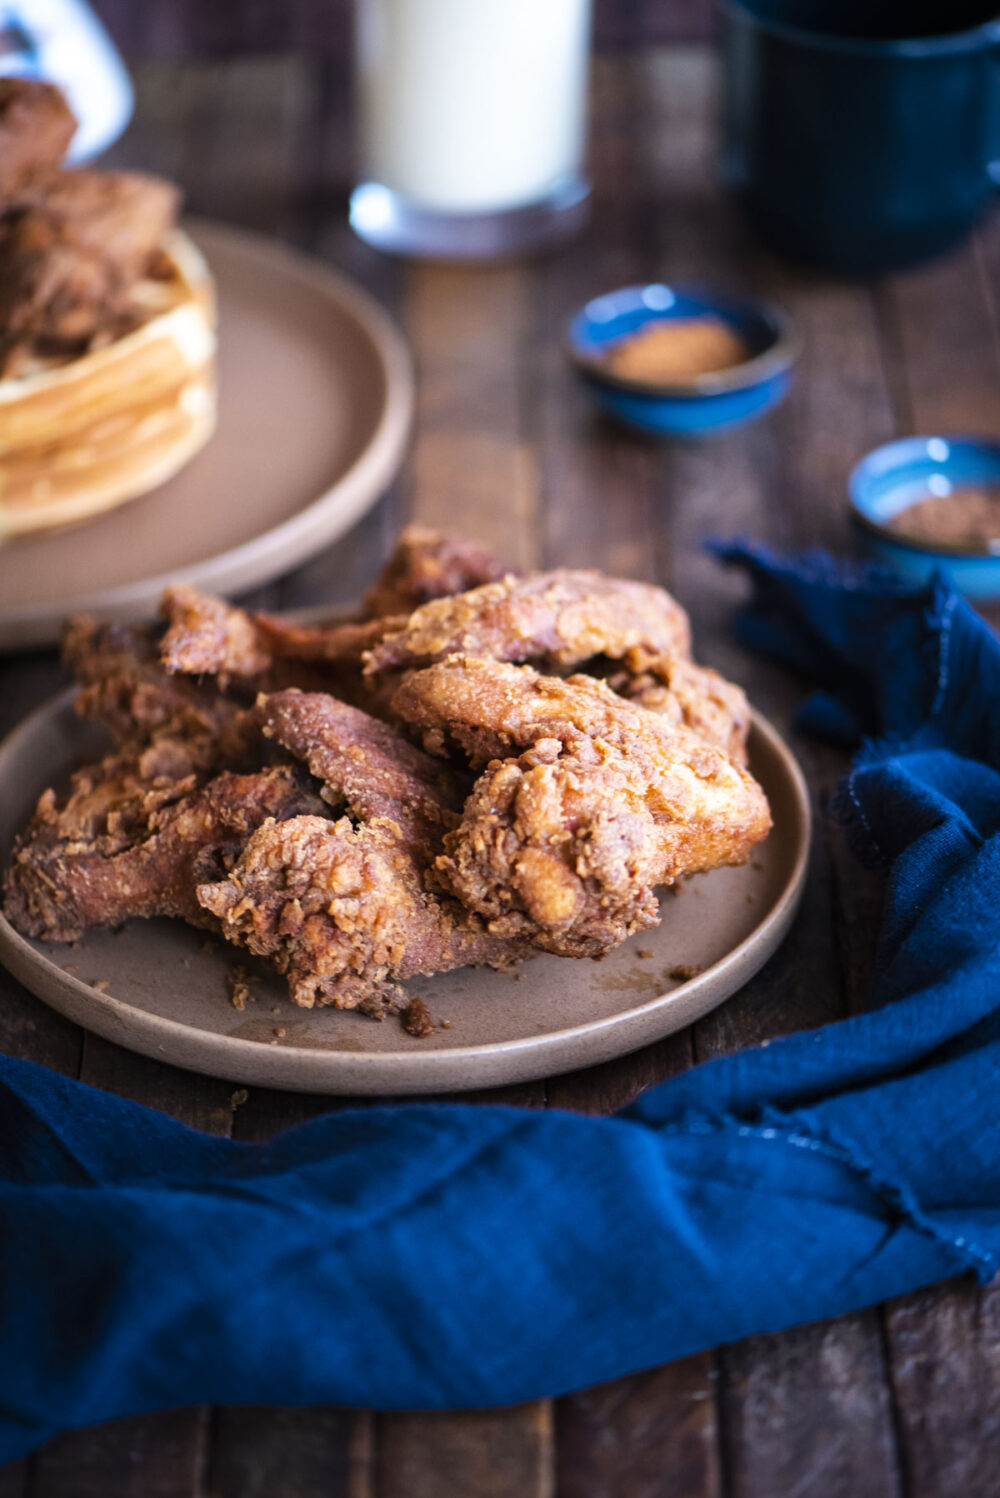 fried eggnog chicken wings on a plate